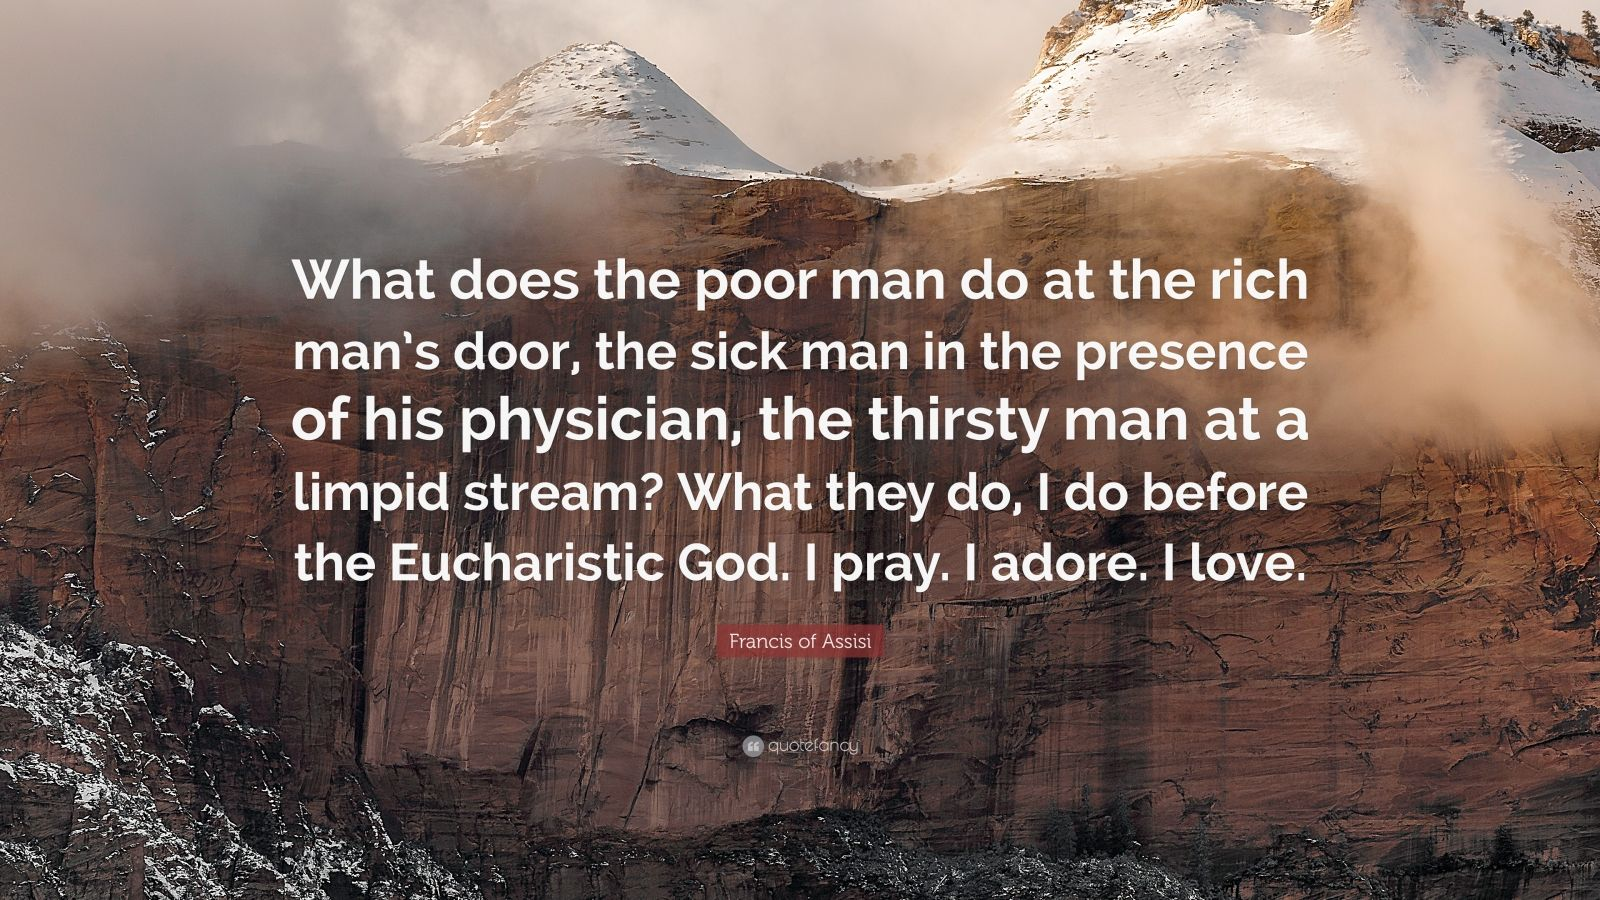 """Francis of Assisi Quote: """"What does the poor man do at the rich man's door, the sick man in the presence of his physician, the thirsty man at a limpid stream? What they do, I do before the Eucharistic God. I pray. I adore. I love."""""""